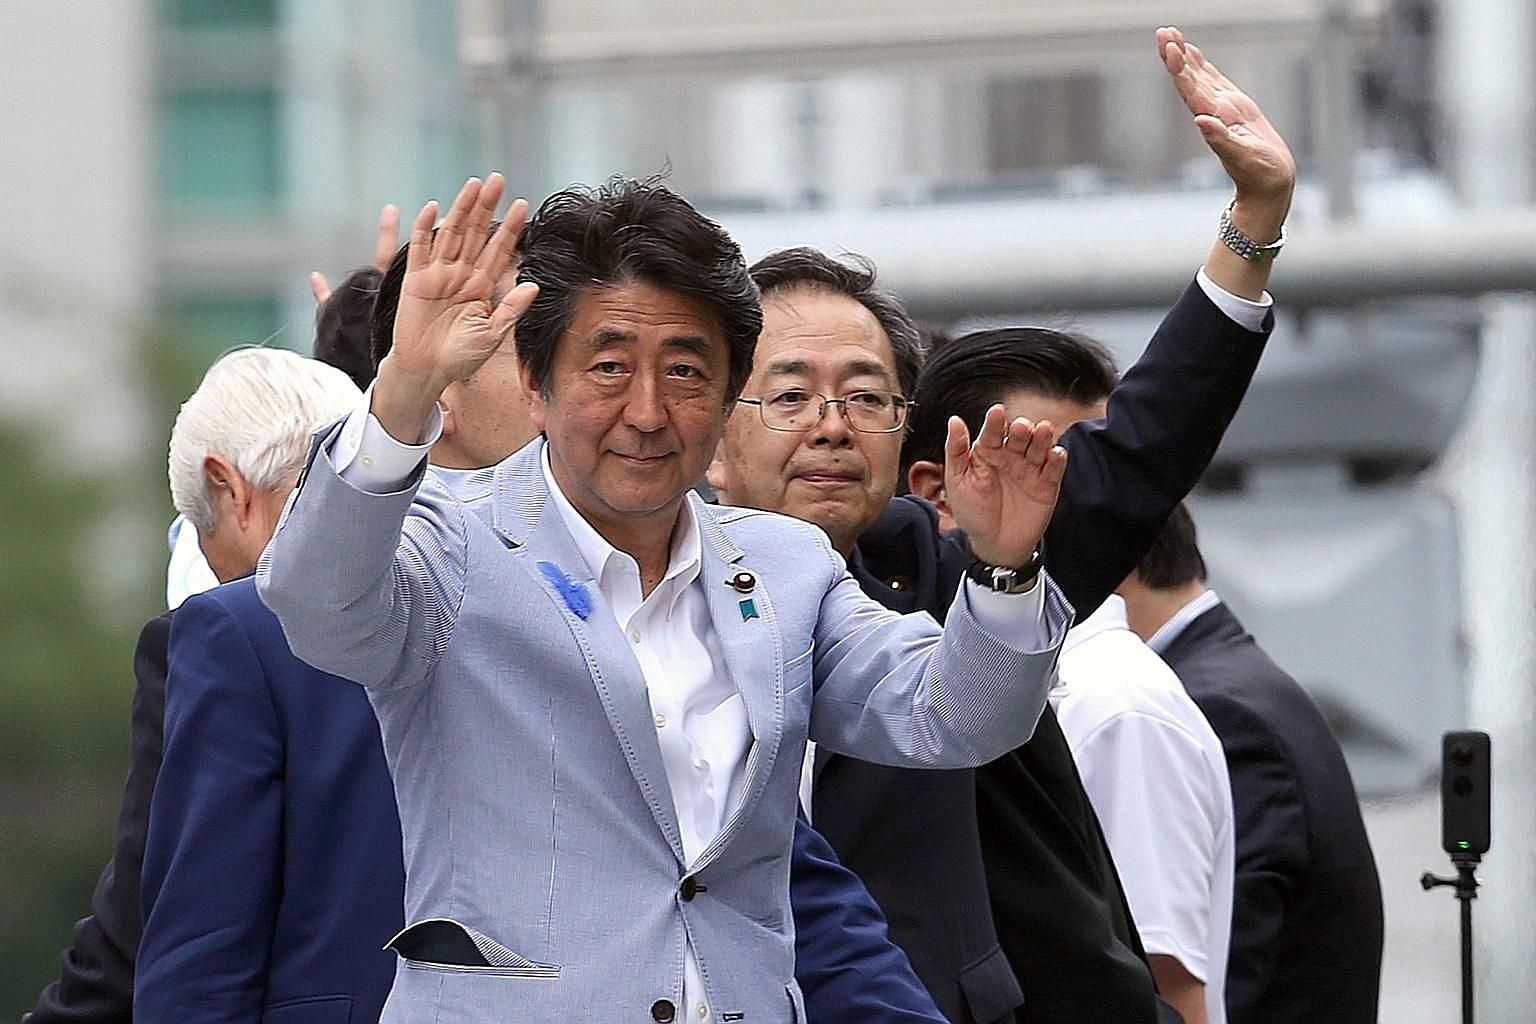 Japanese Prime Minister Shinzo Abe, who is the Liberal Democratic Party (LDP) president, at a campaign rally in Kobe yesterday. A recent poll showed support for the LDP rising to 31 per cent from two weeks ago. PHOTO: BLOOMBERG